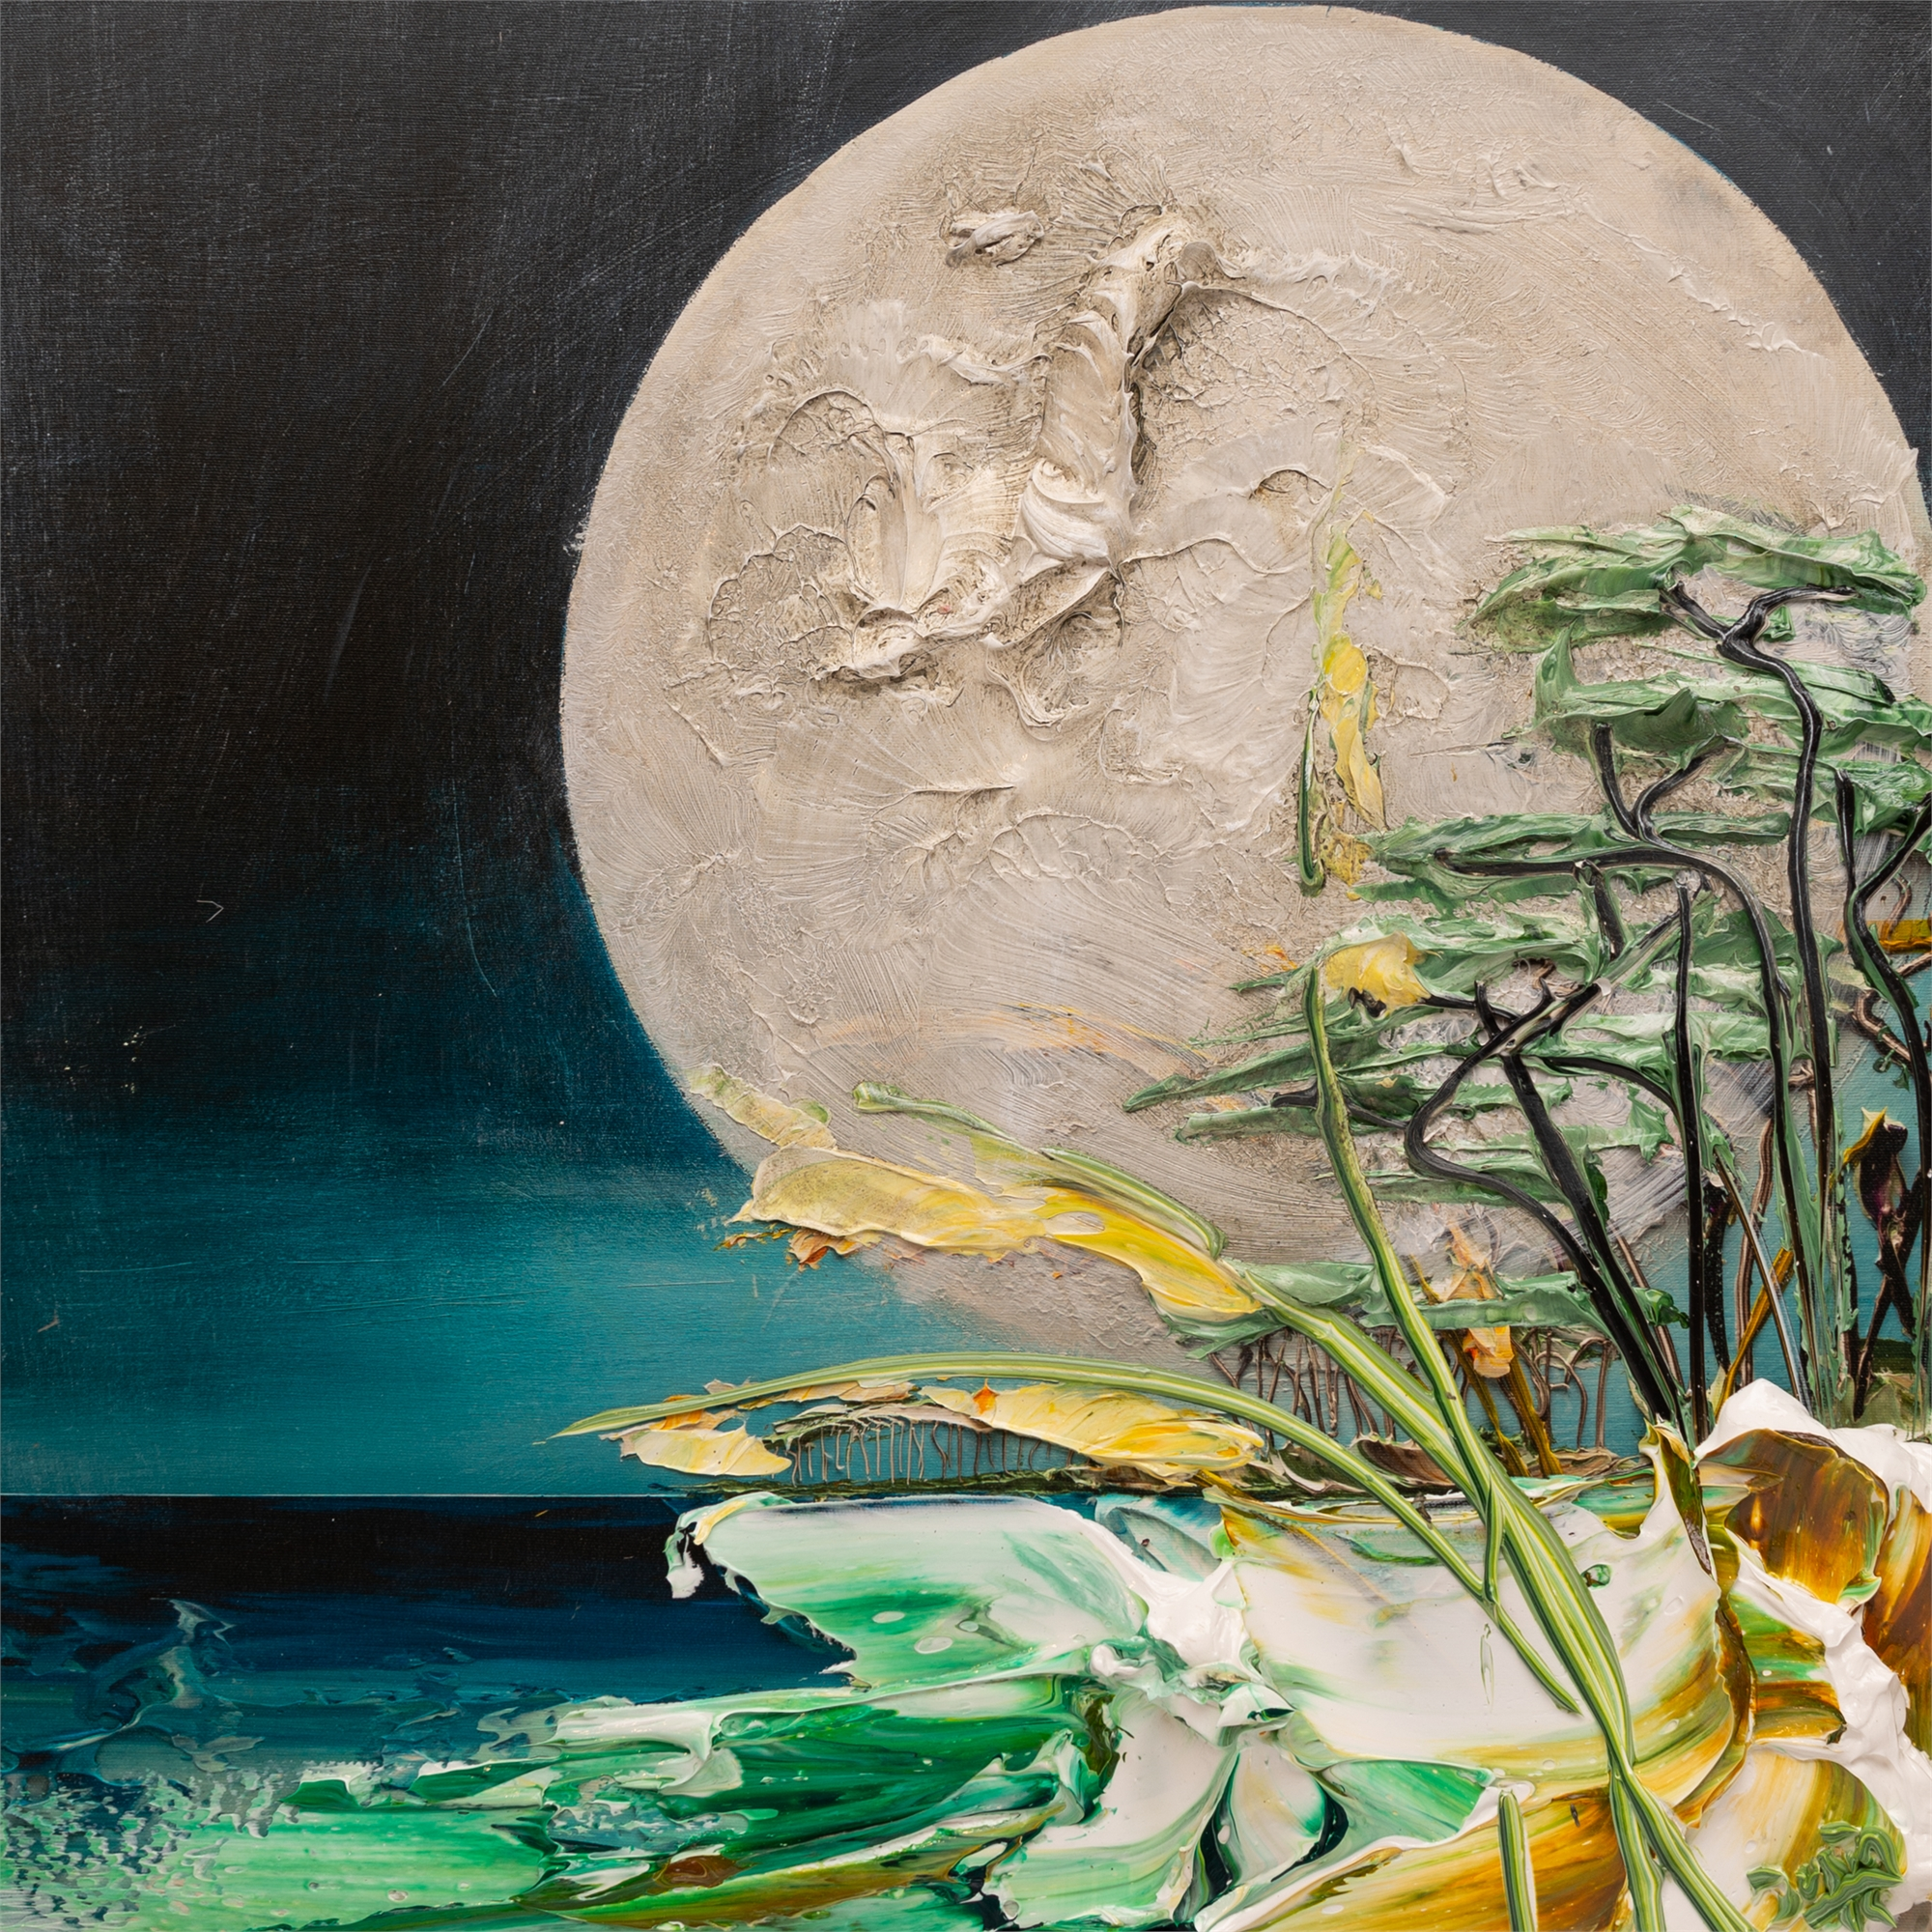 (SOLD) DUSK MOONSCAPE MS-HPAE-5-50-24X24-2019-60 by JUSTIN GAFFREY EDITIONS